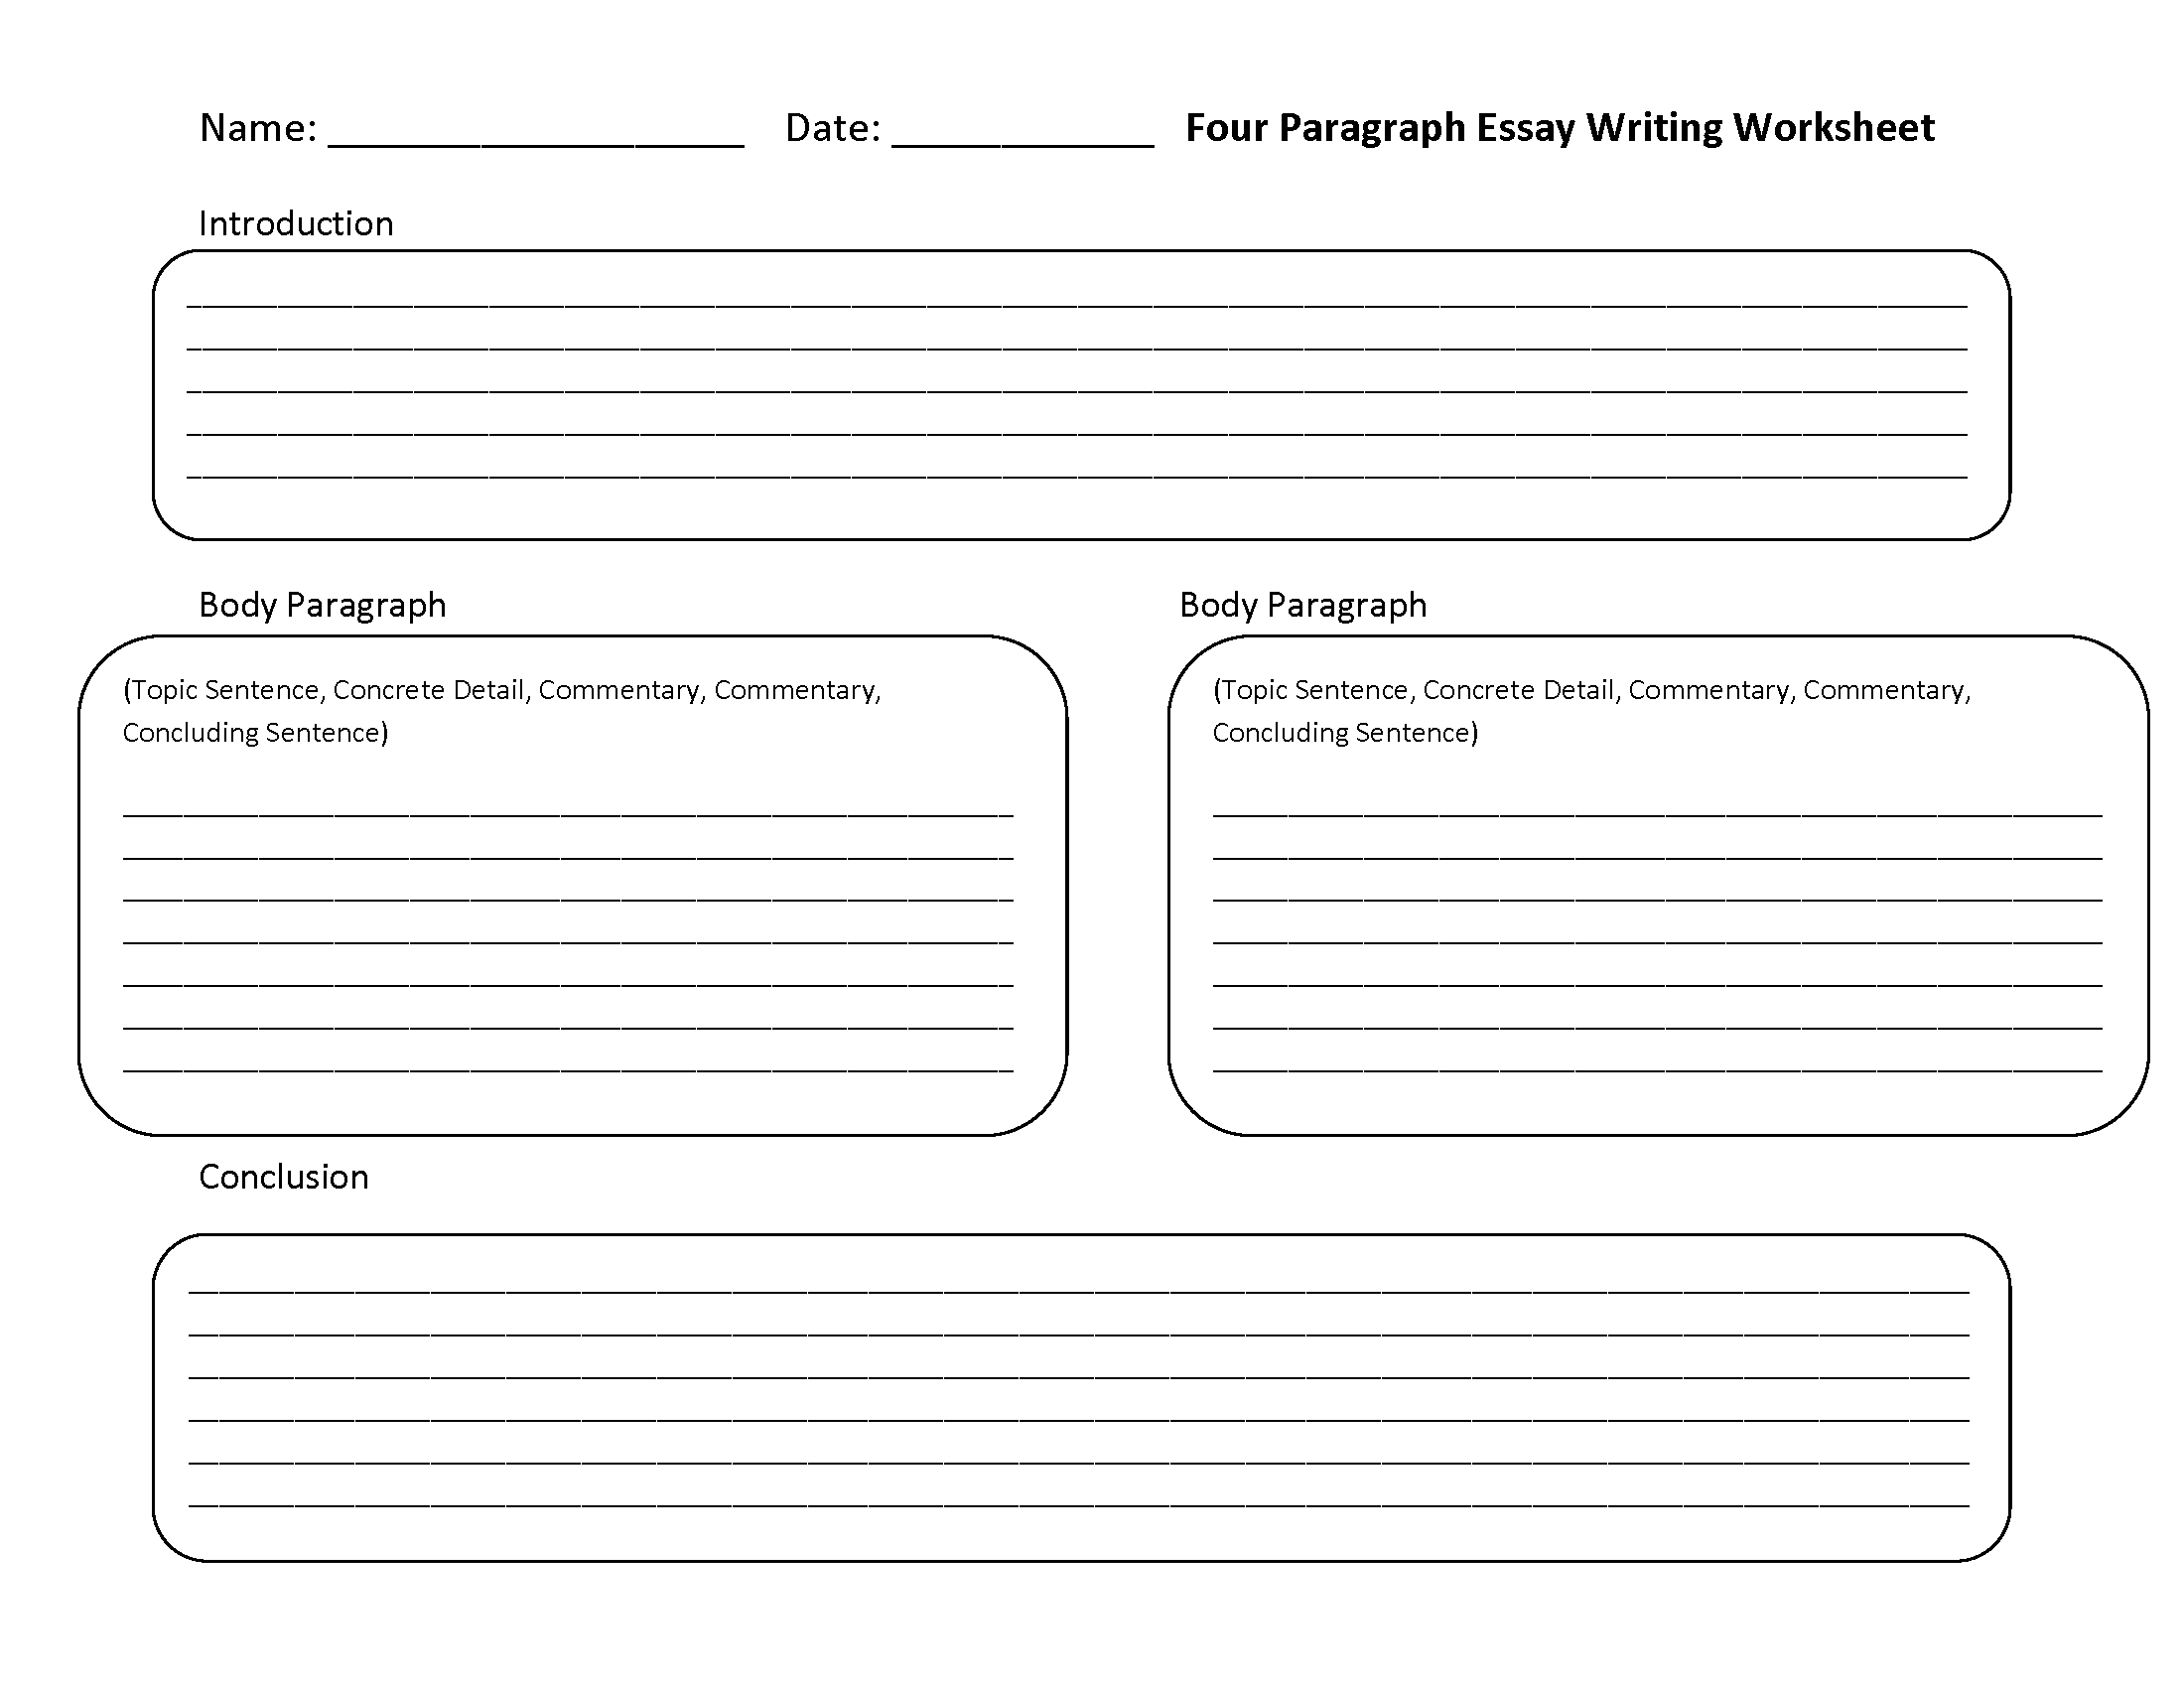 Worksheets Step Four Worksheets writing worksheets essay four paragraph worksheets